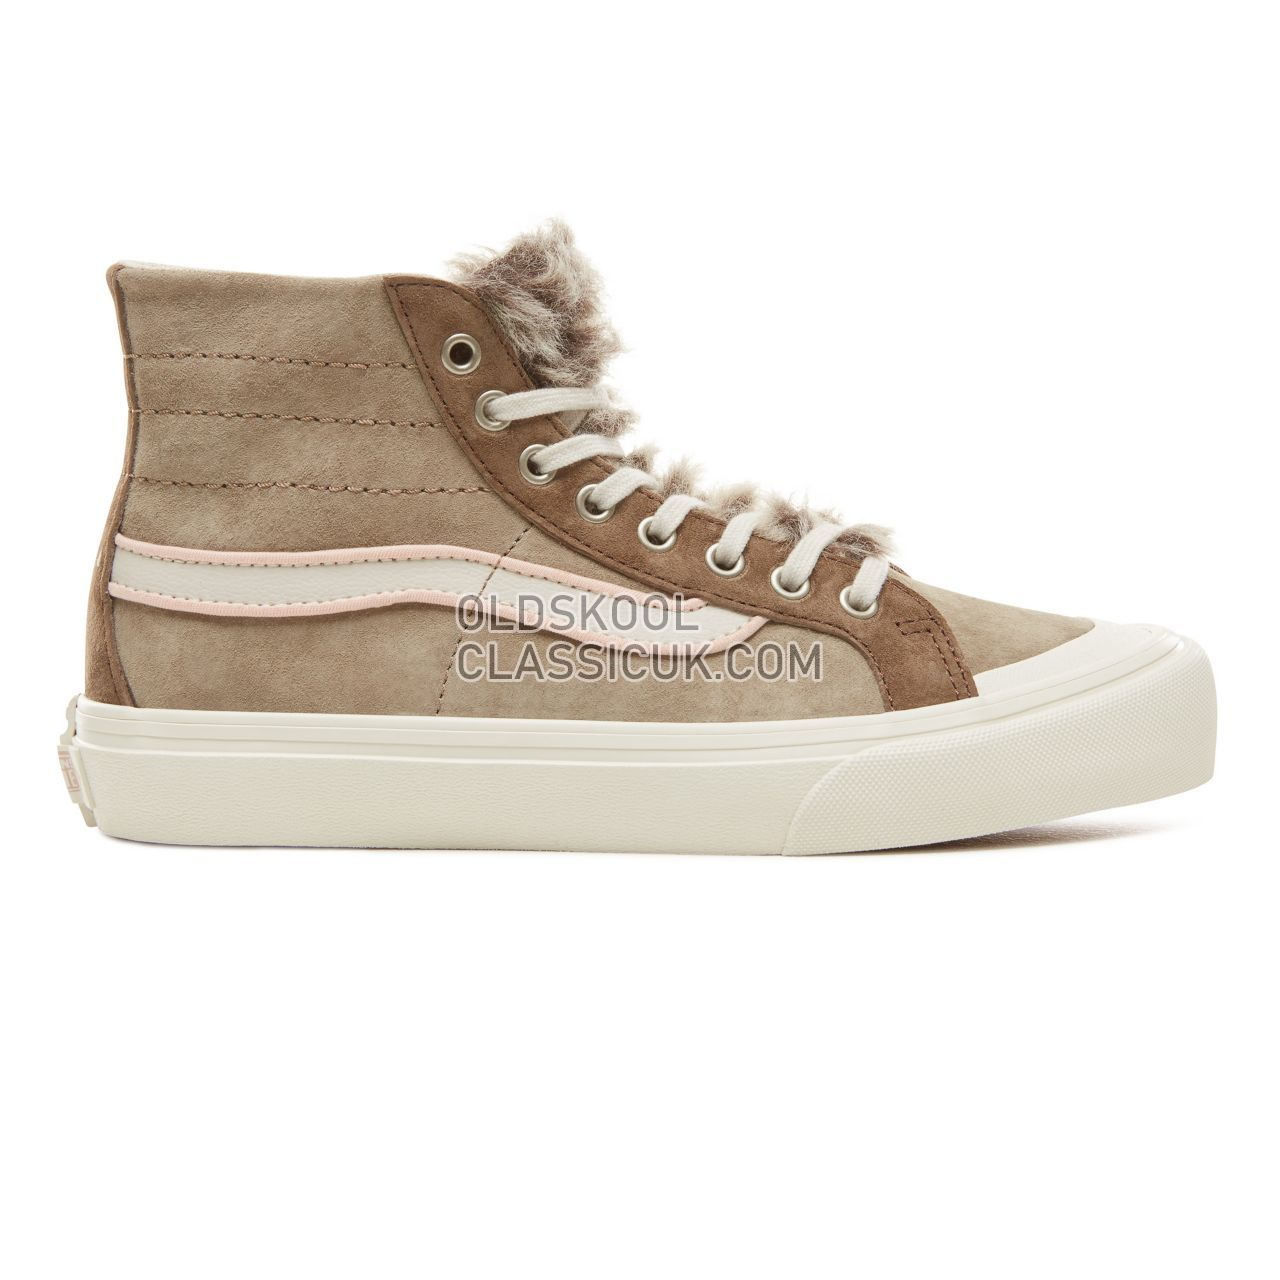 Vans Wolf Pack Sk8-Hi 138 Decon SF Sneakers Womens (Wolf Pack) Desert Taupe VA3MV1UBR Shoes